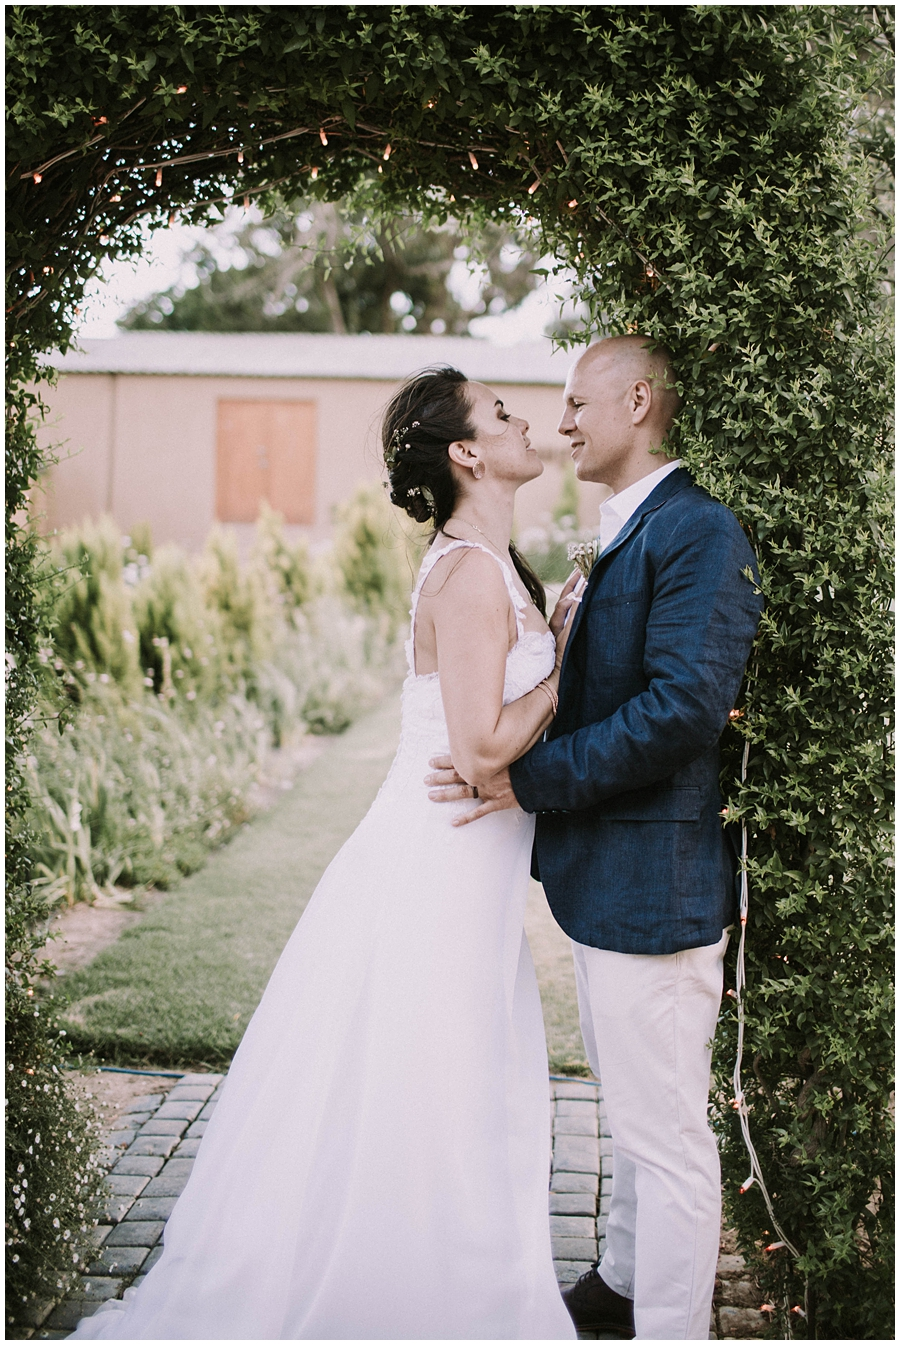 Ronel Kruger Cape Town Wedding and Lifestyle Photographer_1492.jpg